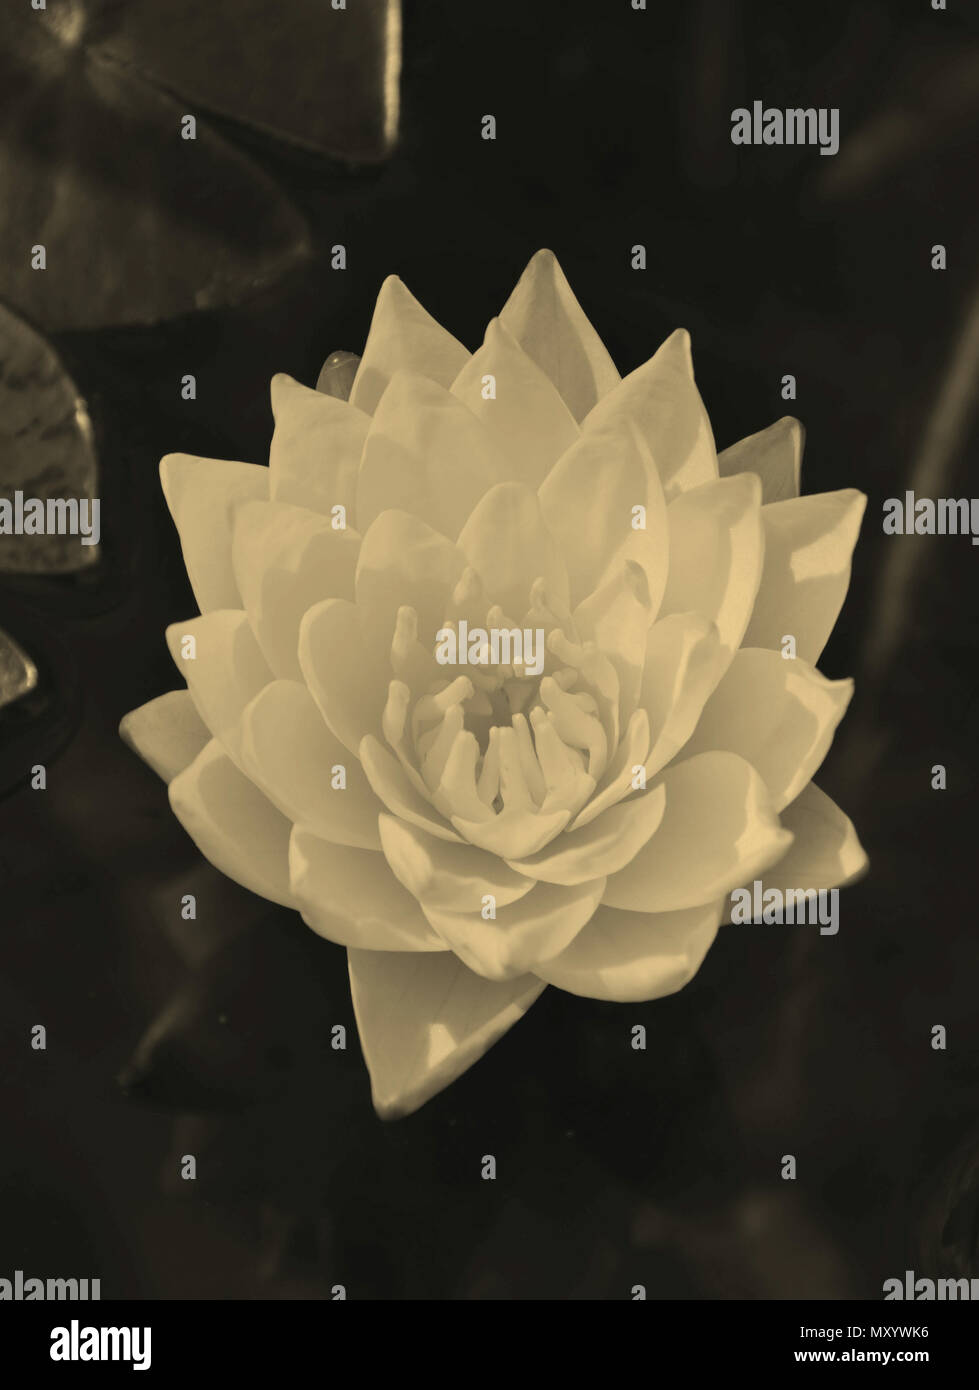 water lily with sepia effect as a sign of loss, sadness and lonliness - Stock Image